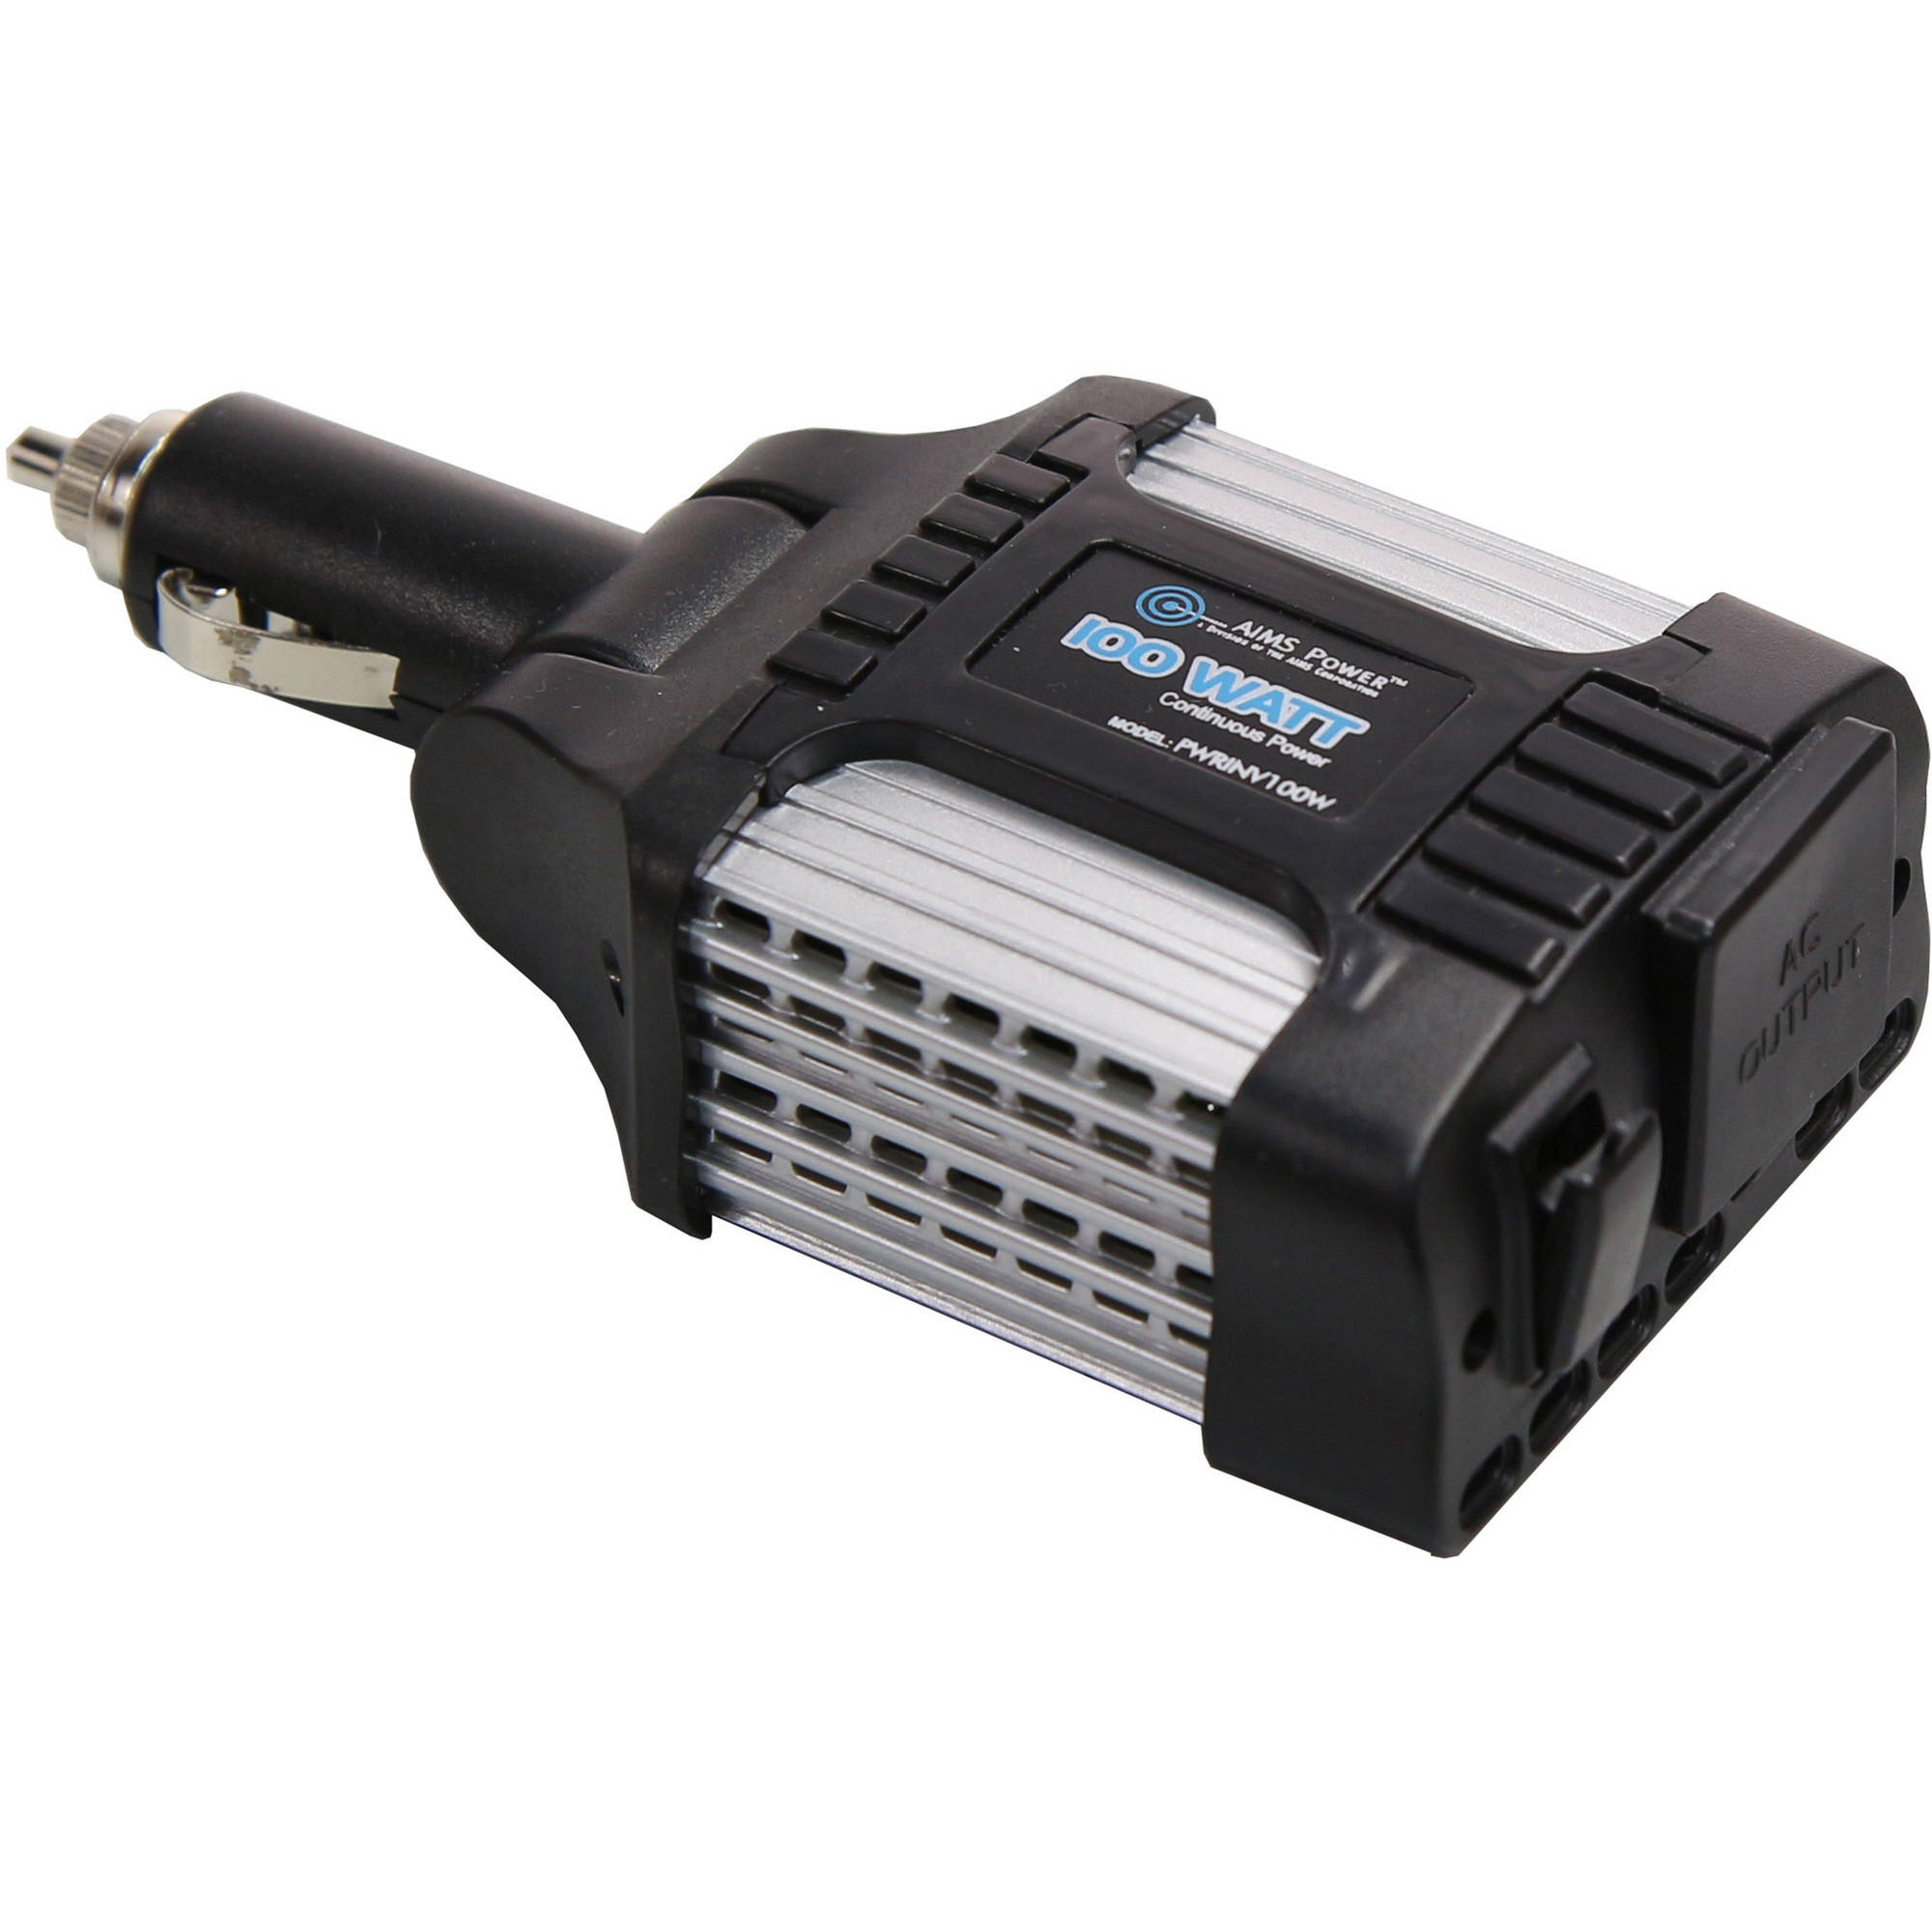 AIMS Power 100 Watt Cigarette Lighter Adapter Inverter